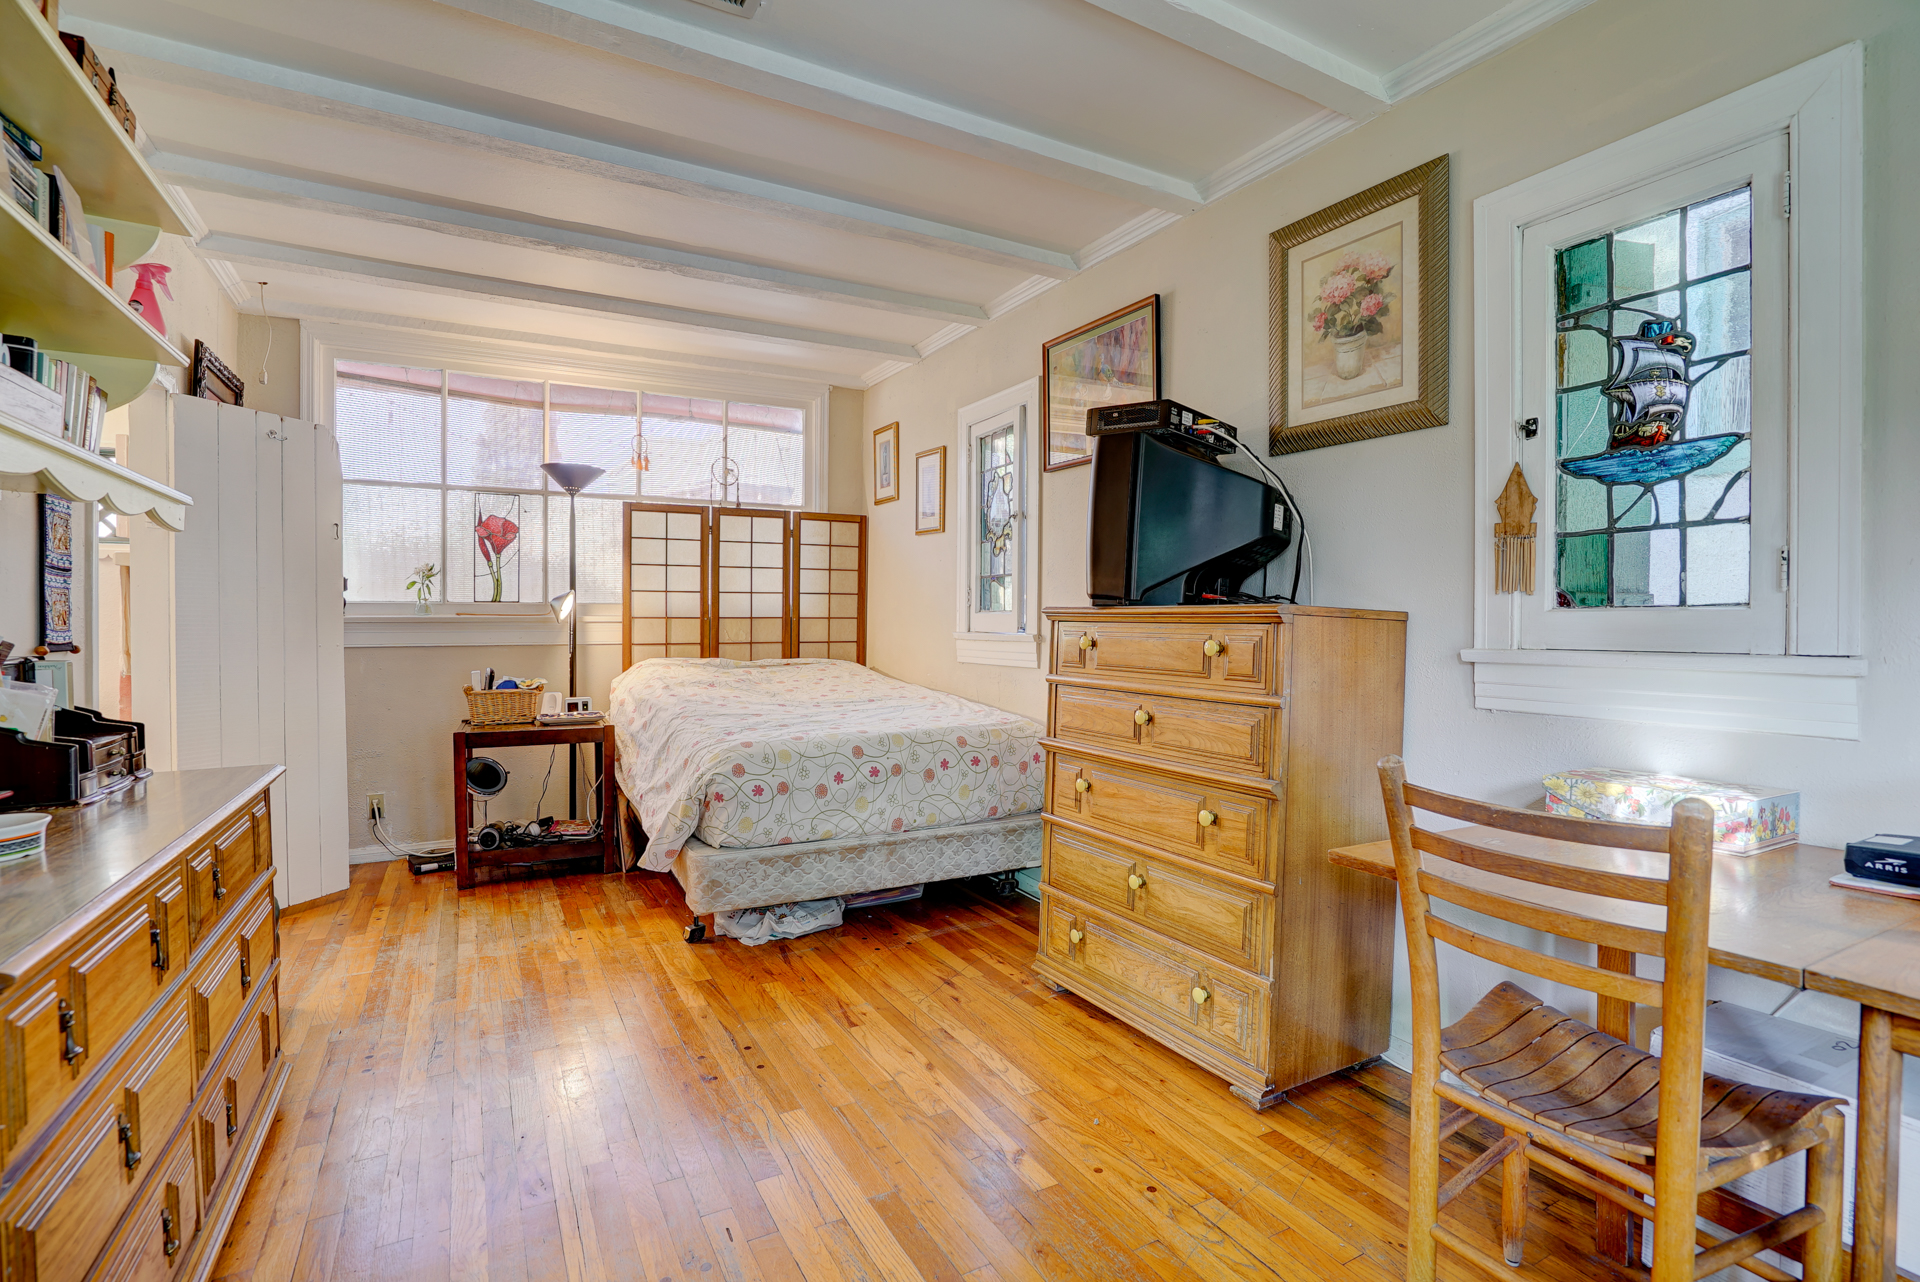 This bedroom was actually the studio where Jekel designed his artistic creations during the 40 years he lived on this property.